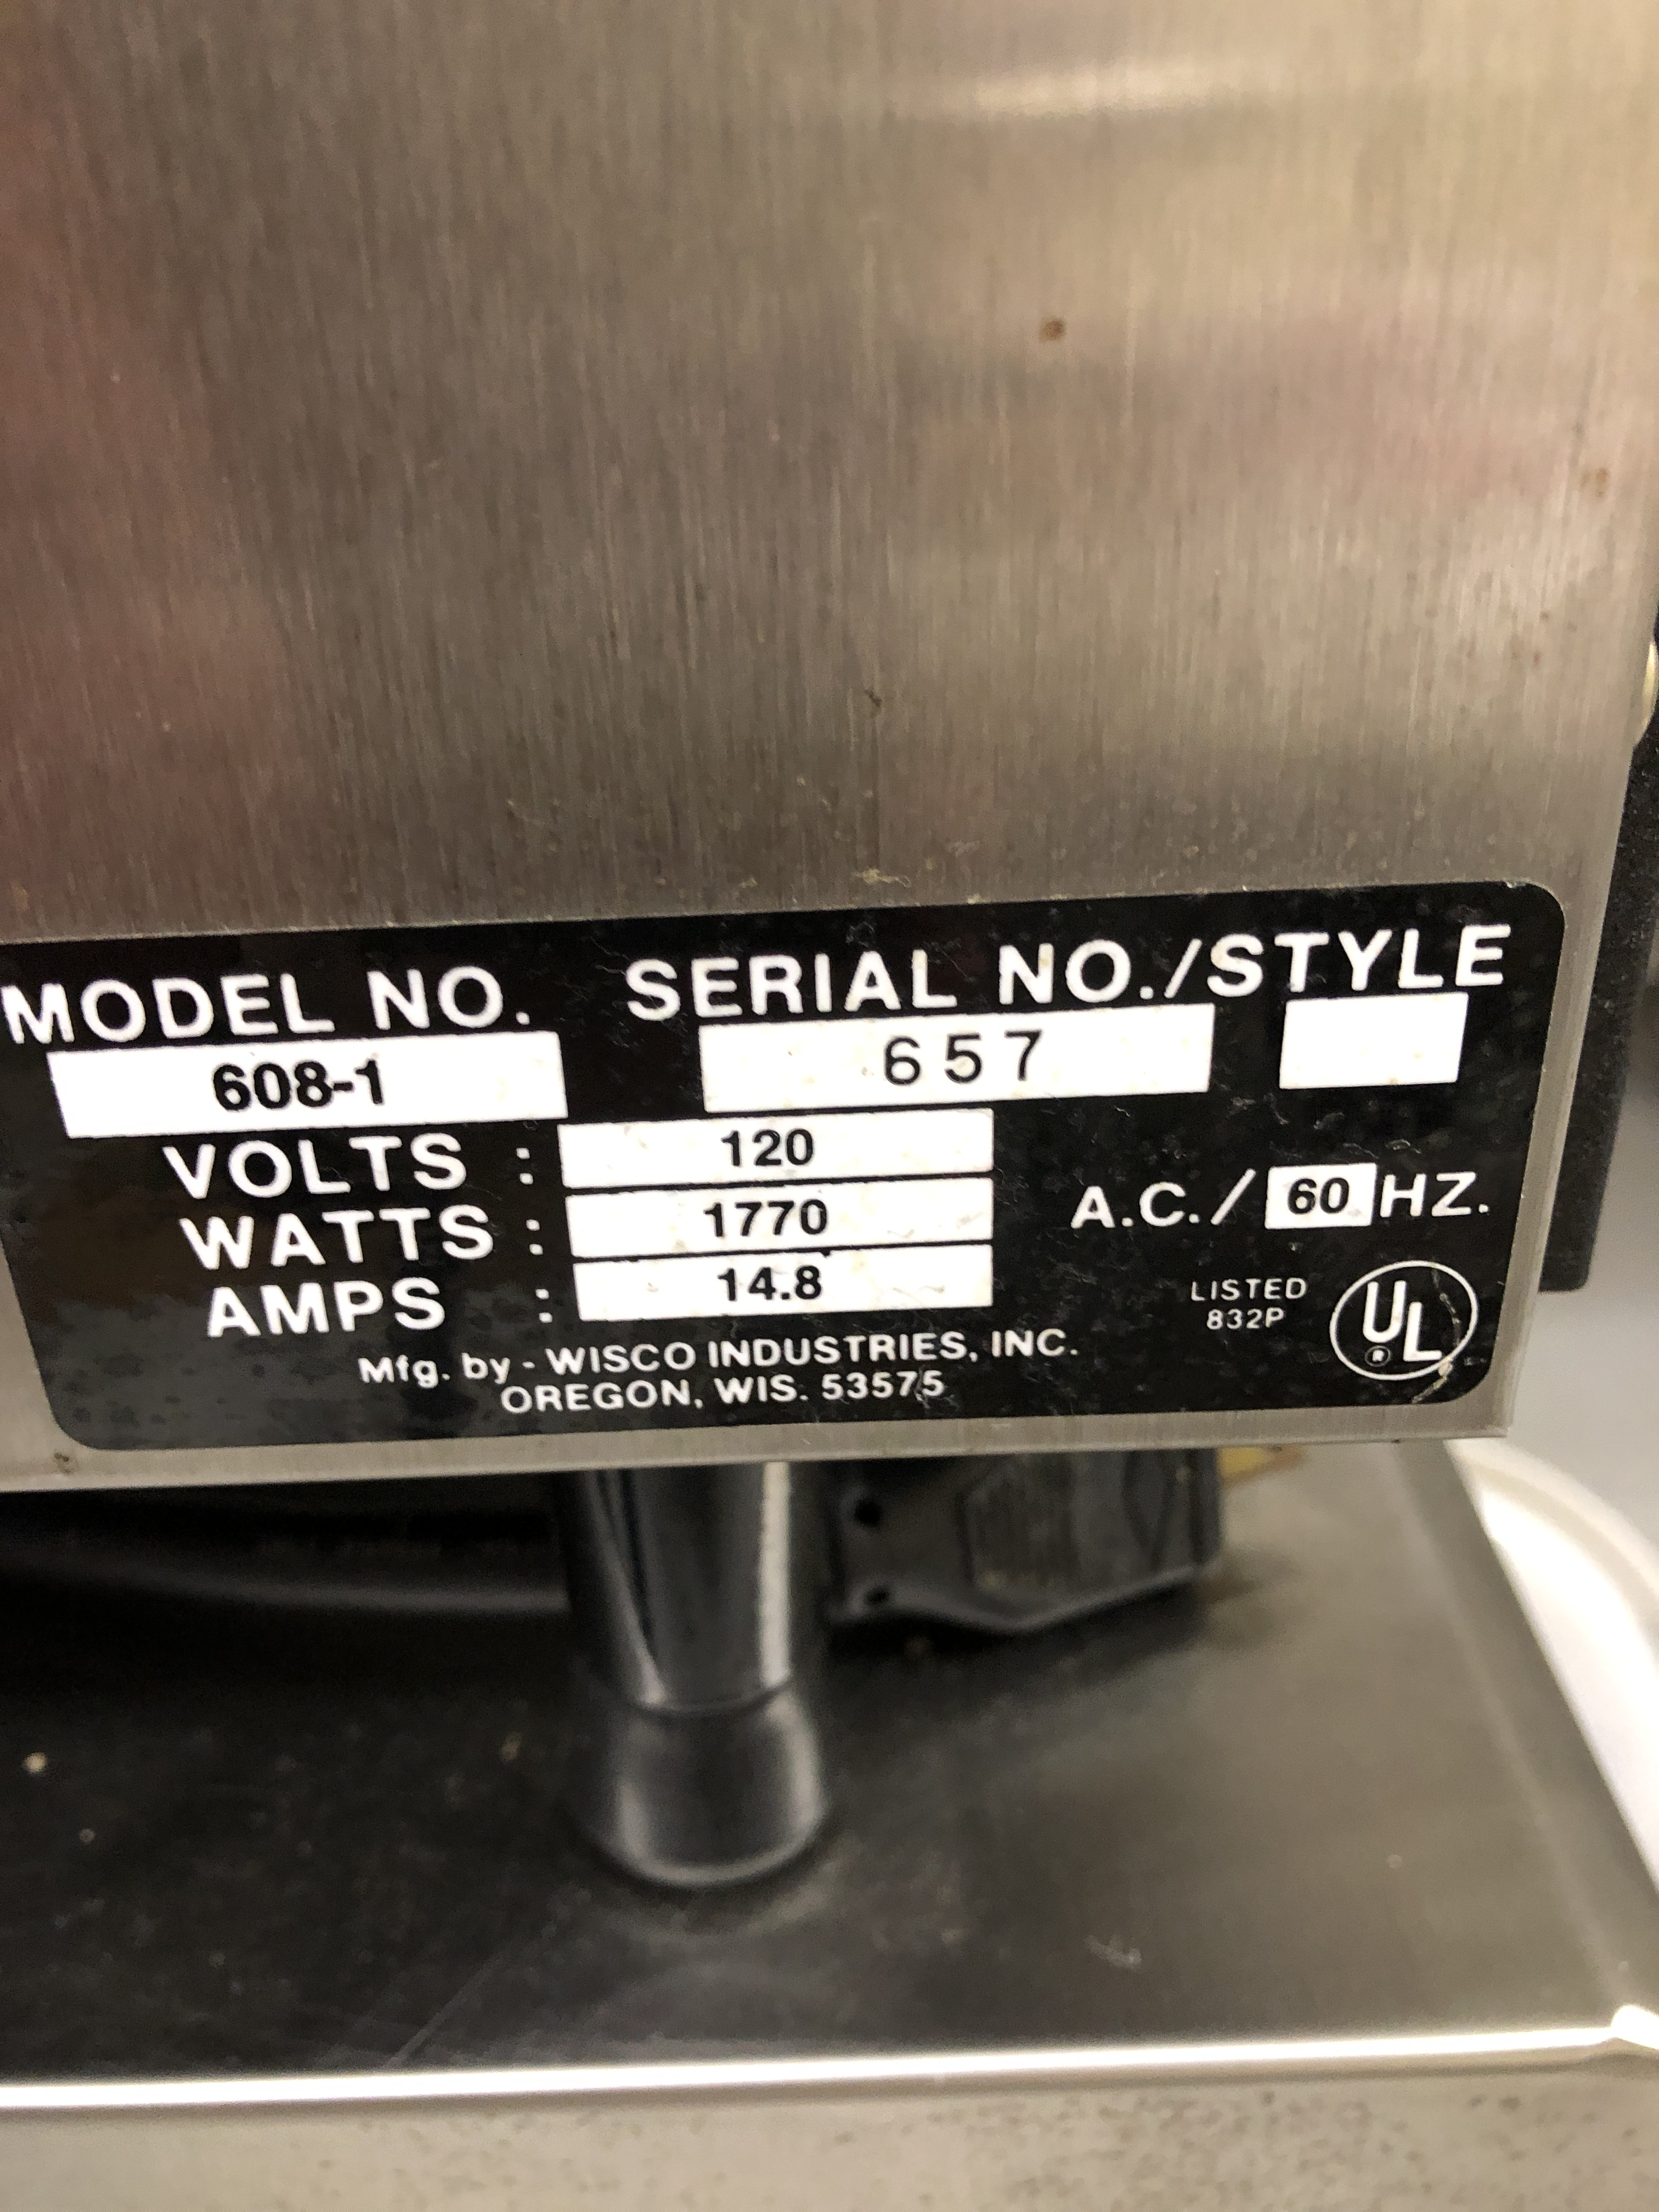 Lot 55 - Wisco model 608-1 Super Convection Oven